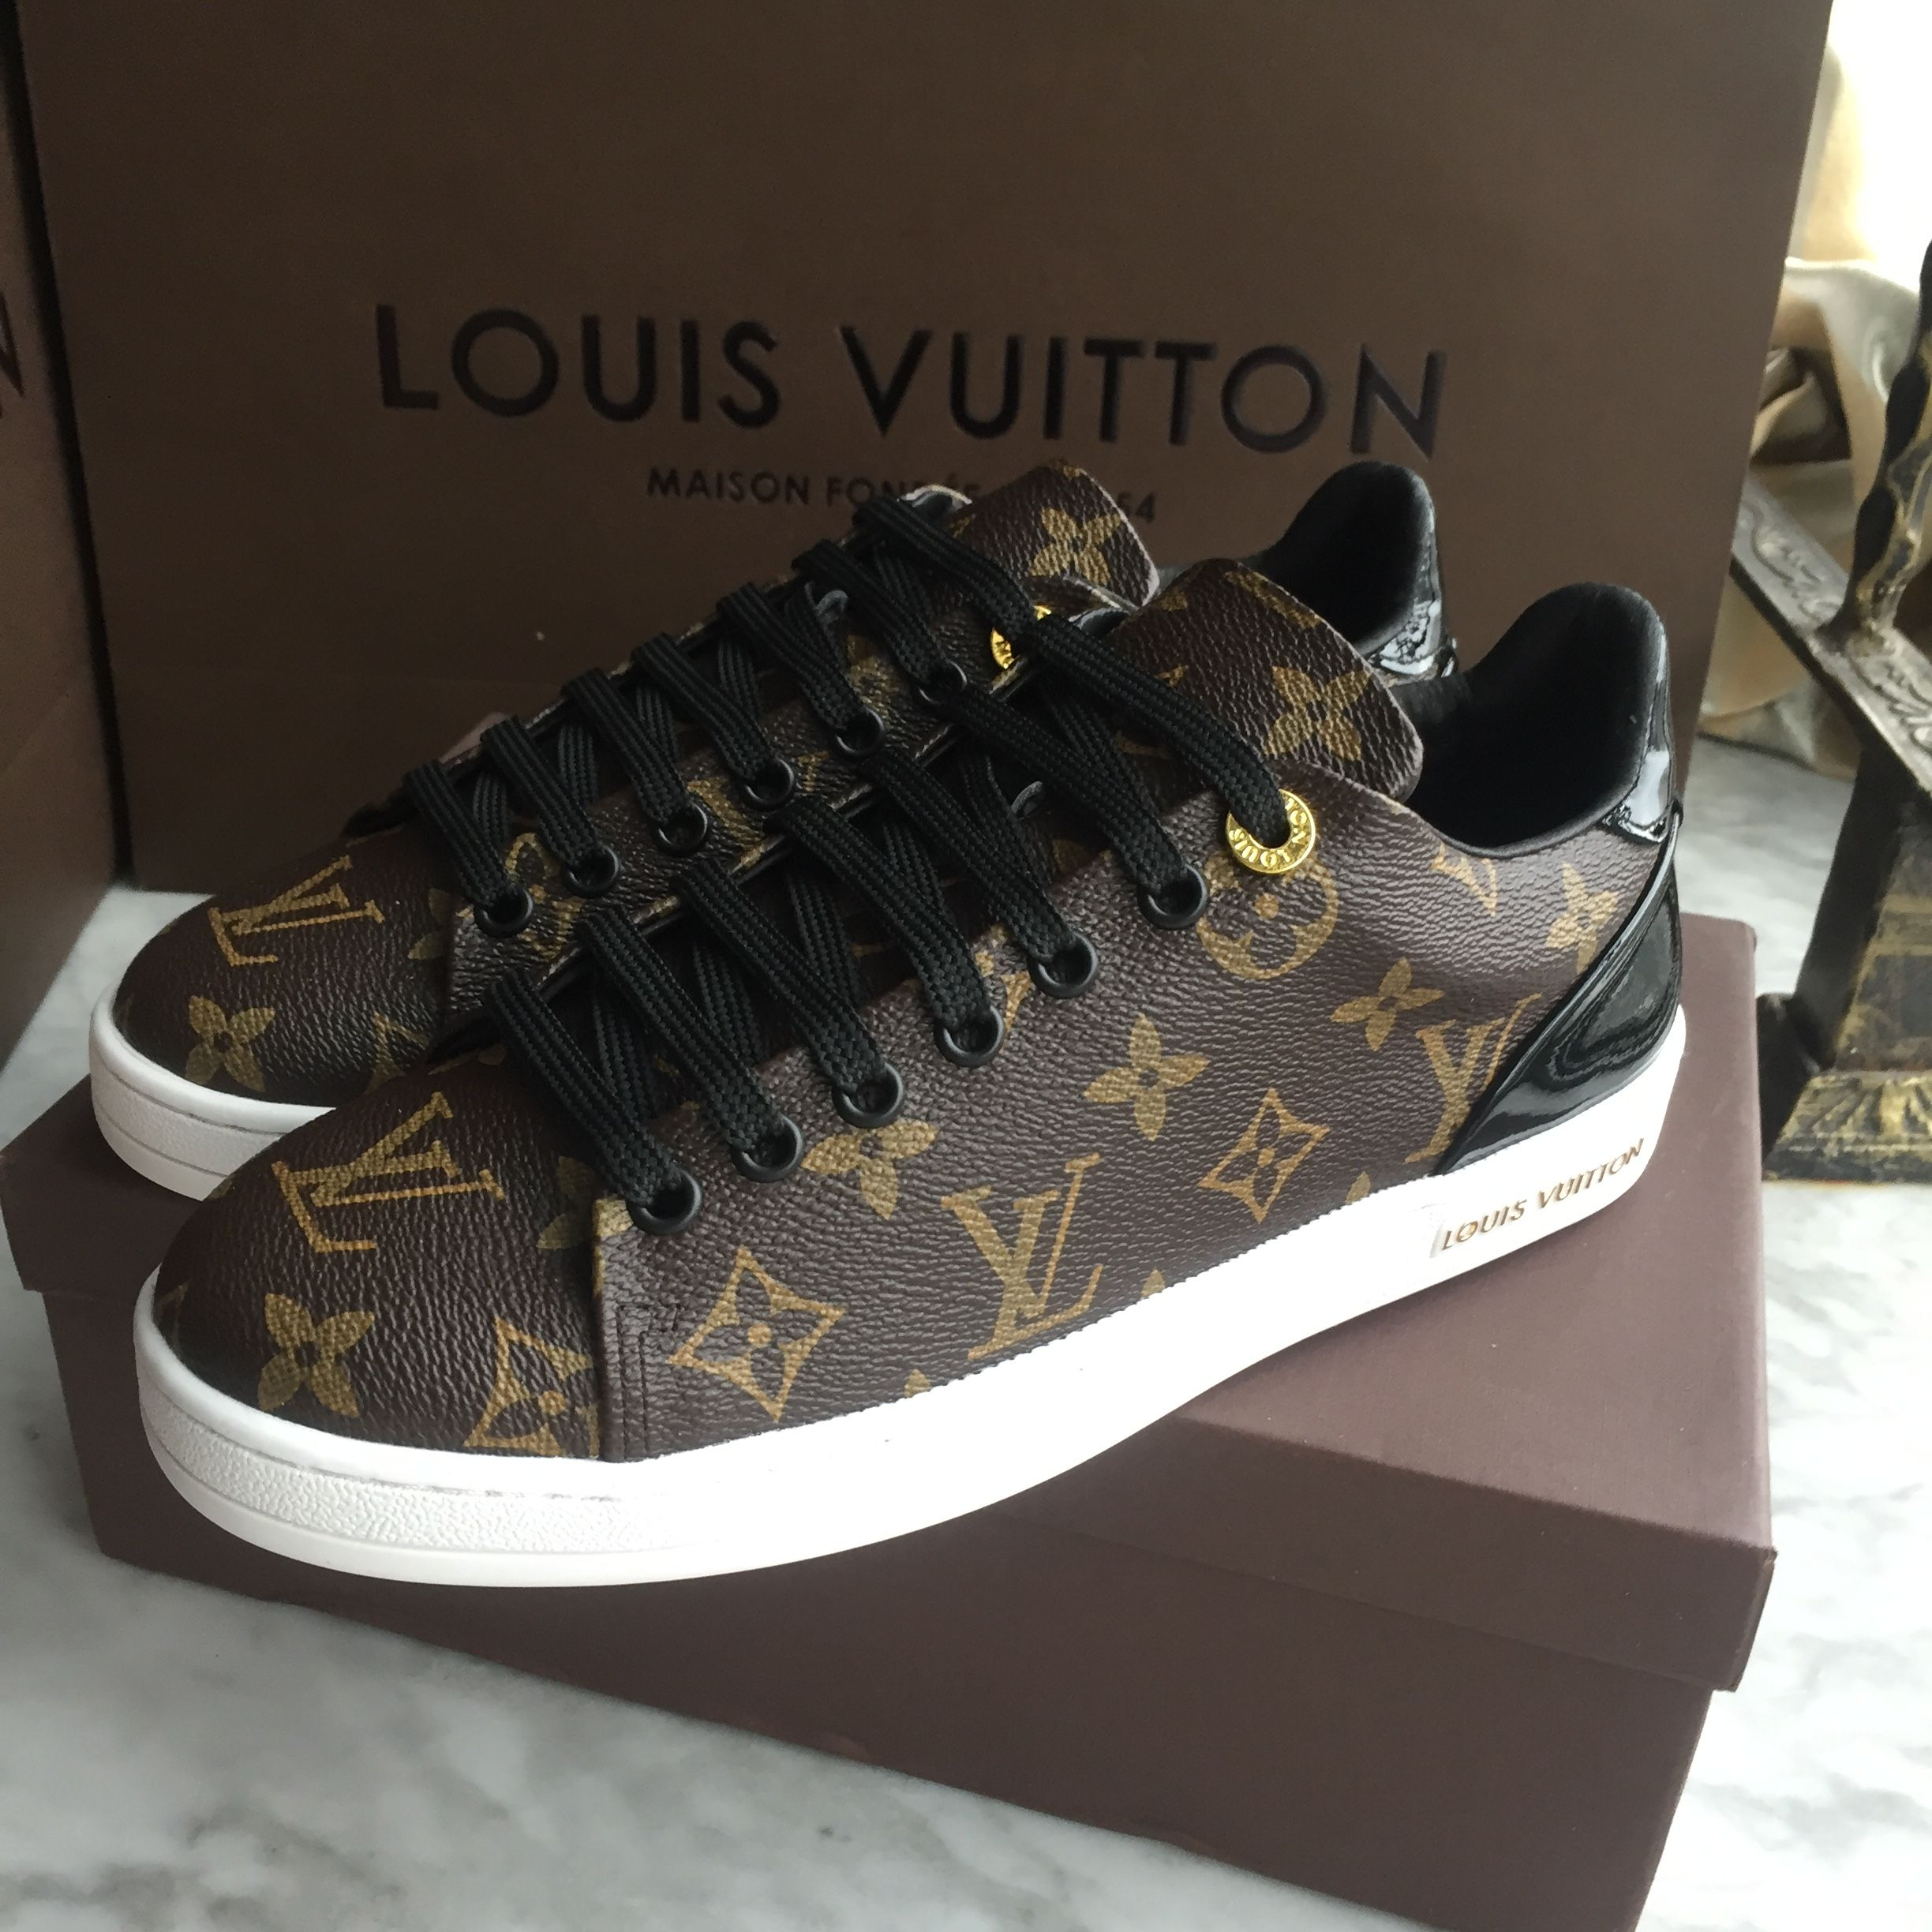 Louis Vuitton Lv woman man unisex shoes sneakers   Shoes   Shoes ... 0b0a39b622f